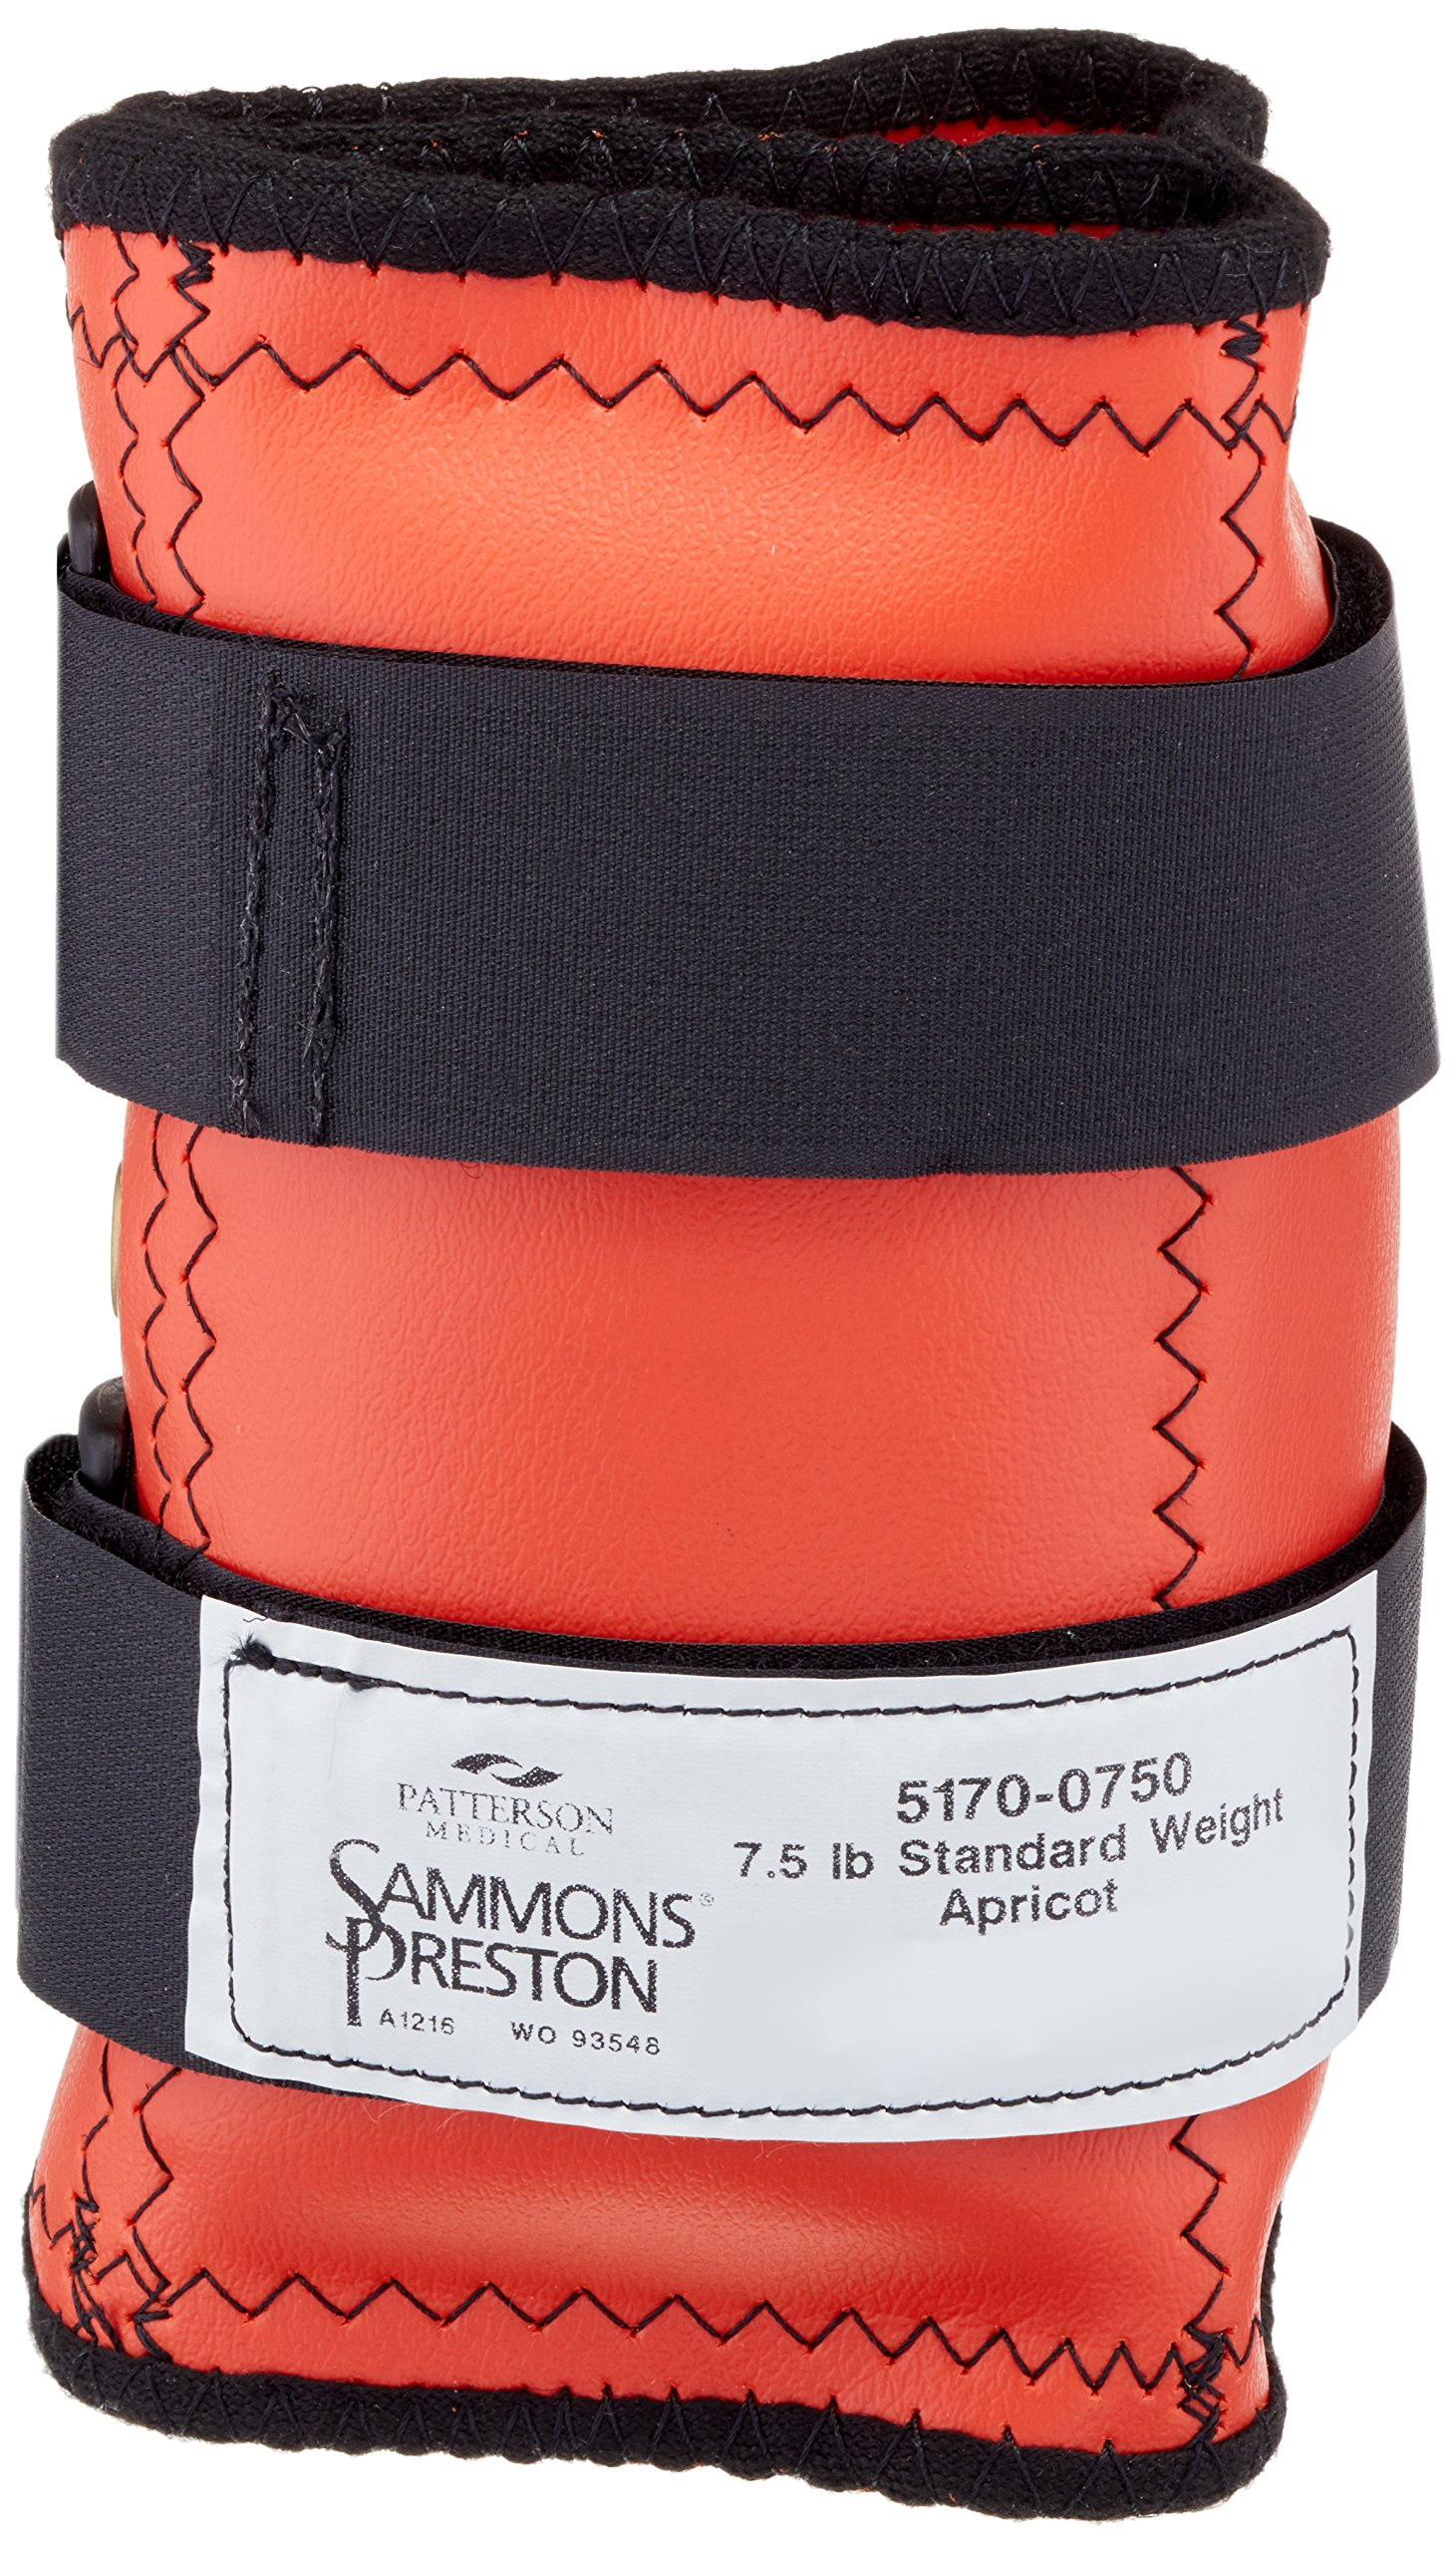 Sammons Preston Cuff Weight, 7.5 lb, Orange, 2 Velcro Straps & D-Ring Closure, Grommet for Easy Hanging, Steel Ankle & Wrist Weights are Lead Free, Exercise Tool for Strength Building & Injury Rehab by Sammons Preston (Image #1)